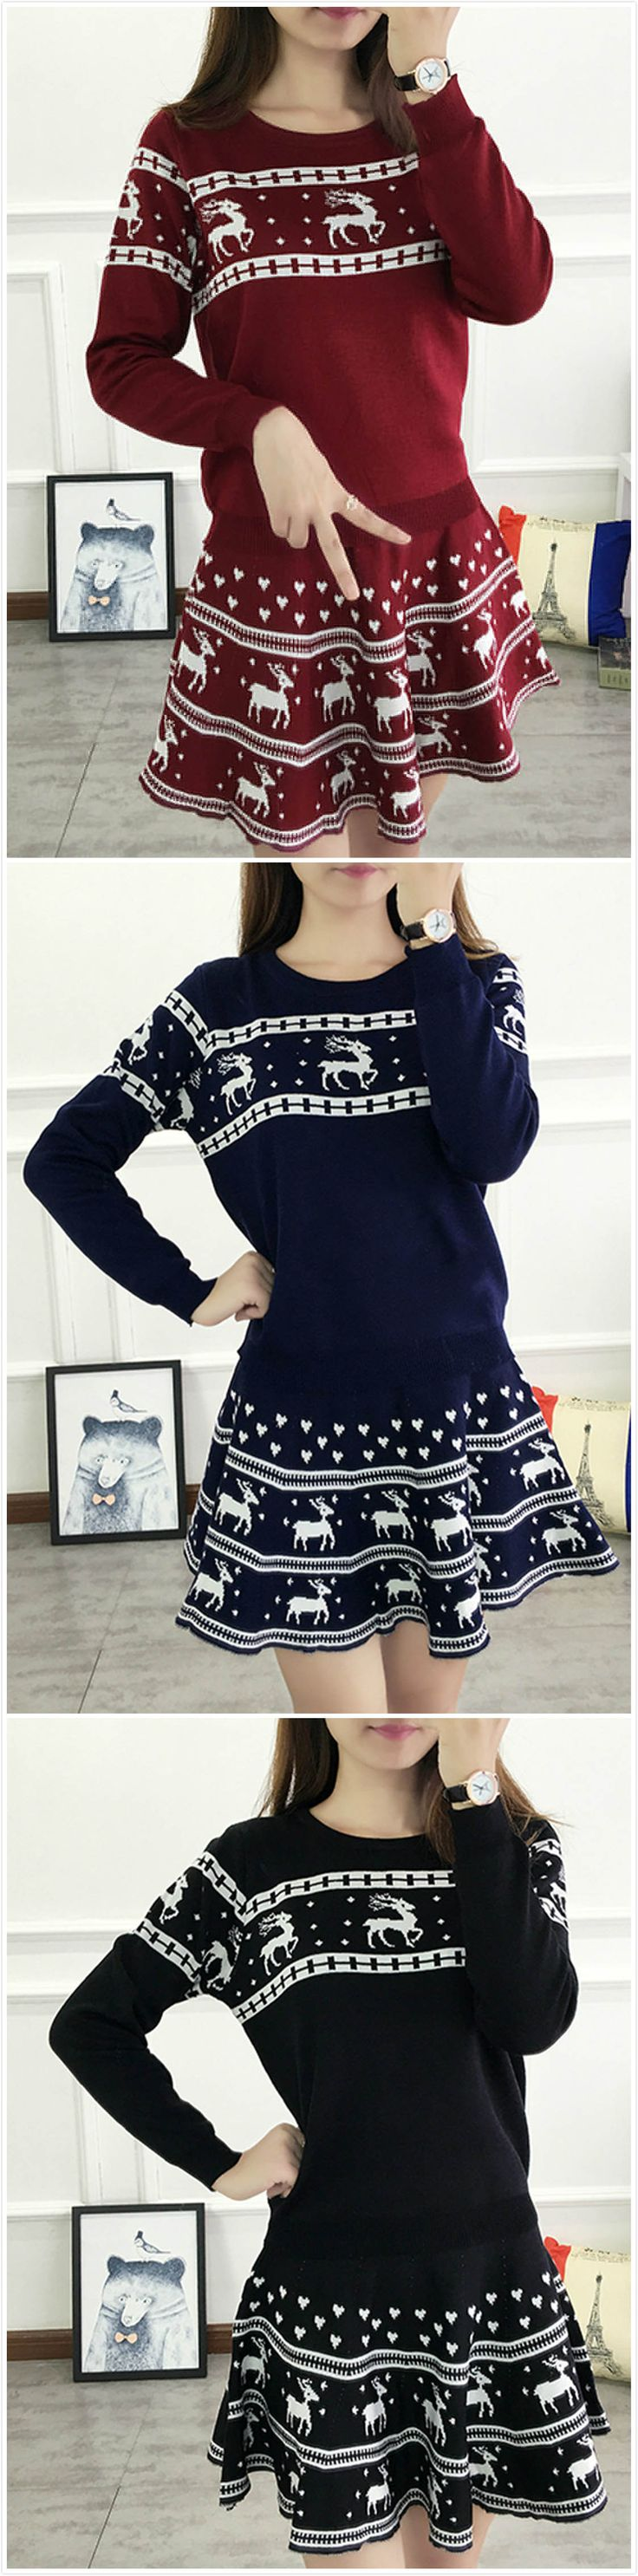 Women's Christmas Graphic Knit Matching Set